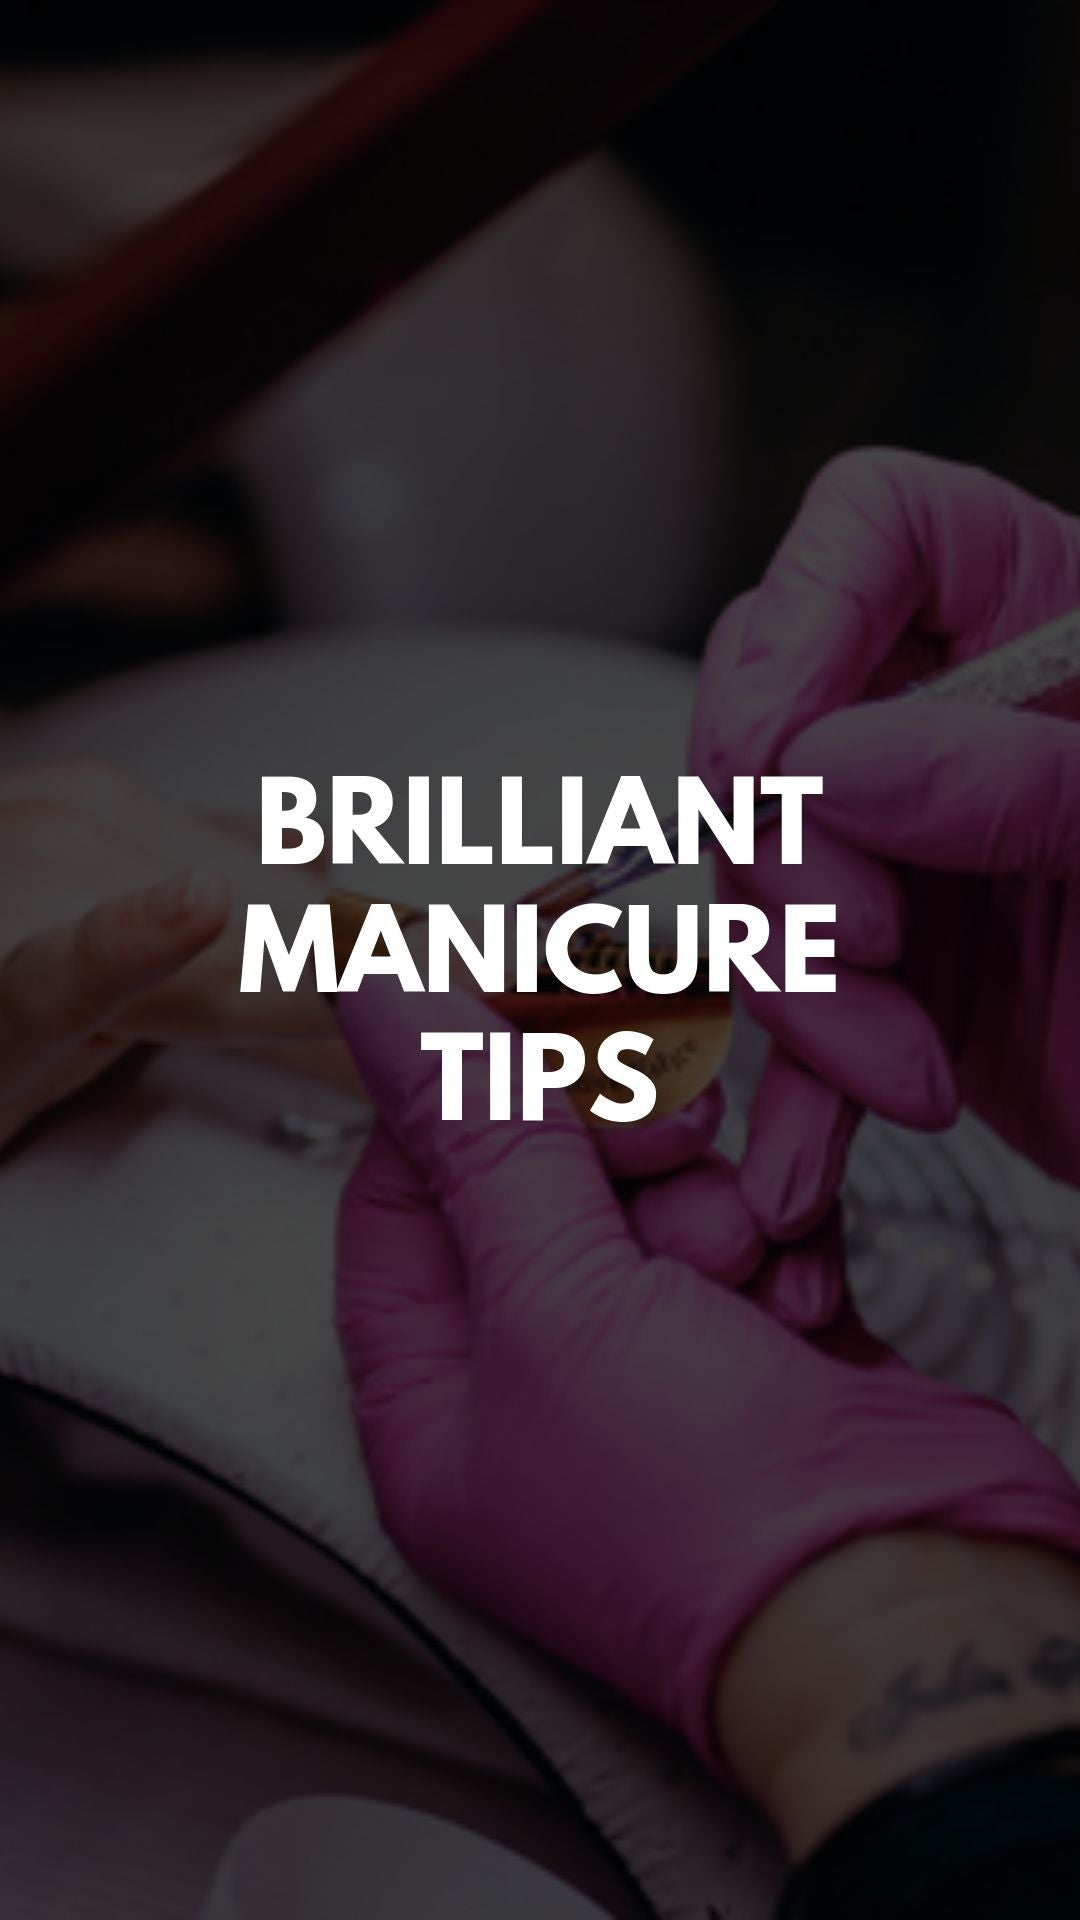 Brilliant Manicure Tips